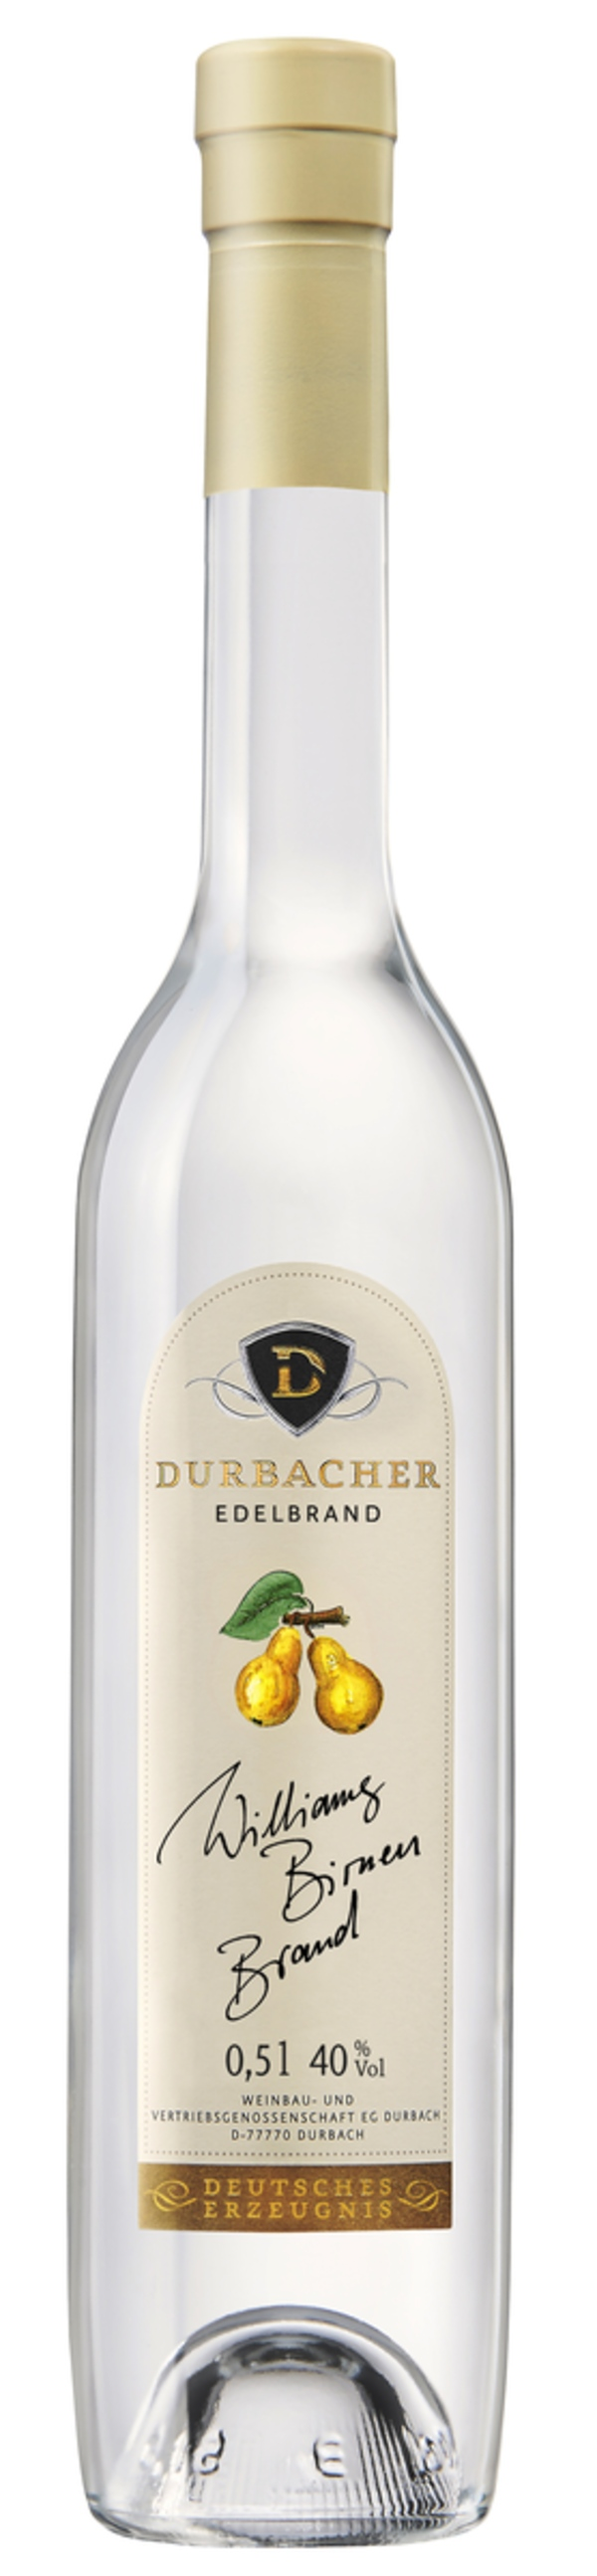 Durbacher Edelbrand Williams Birnen Brand 0,5 ltr